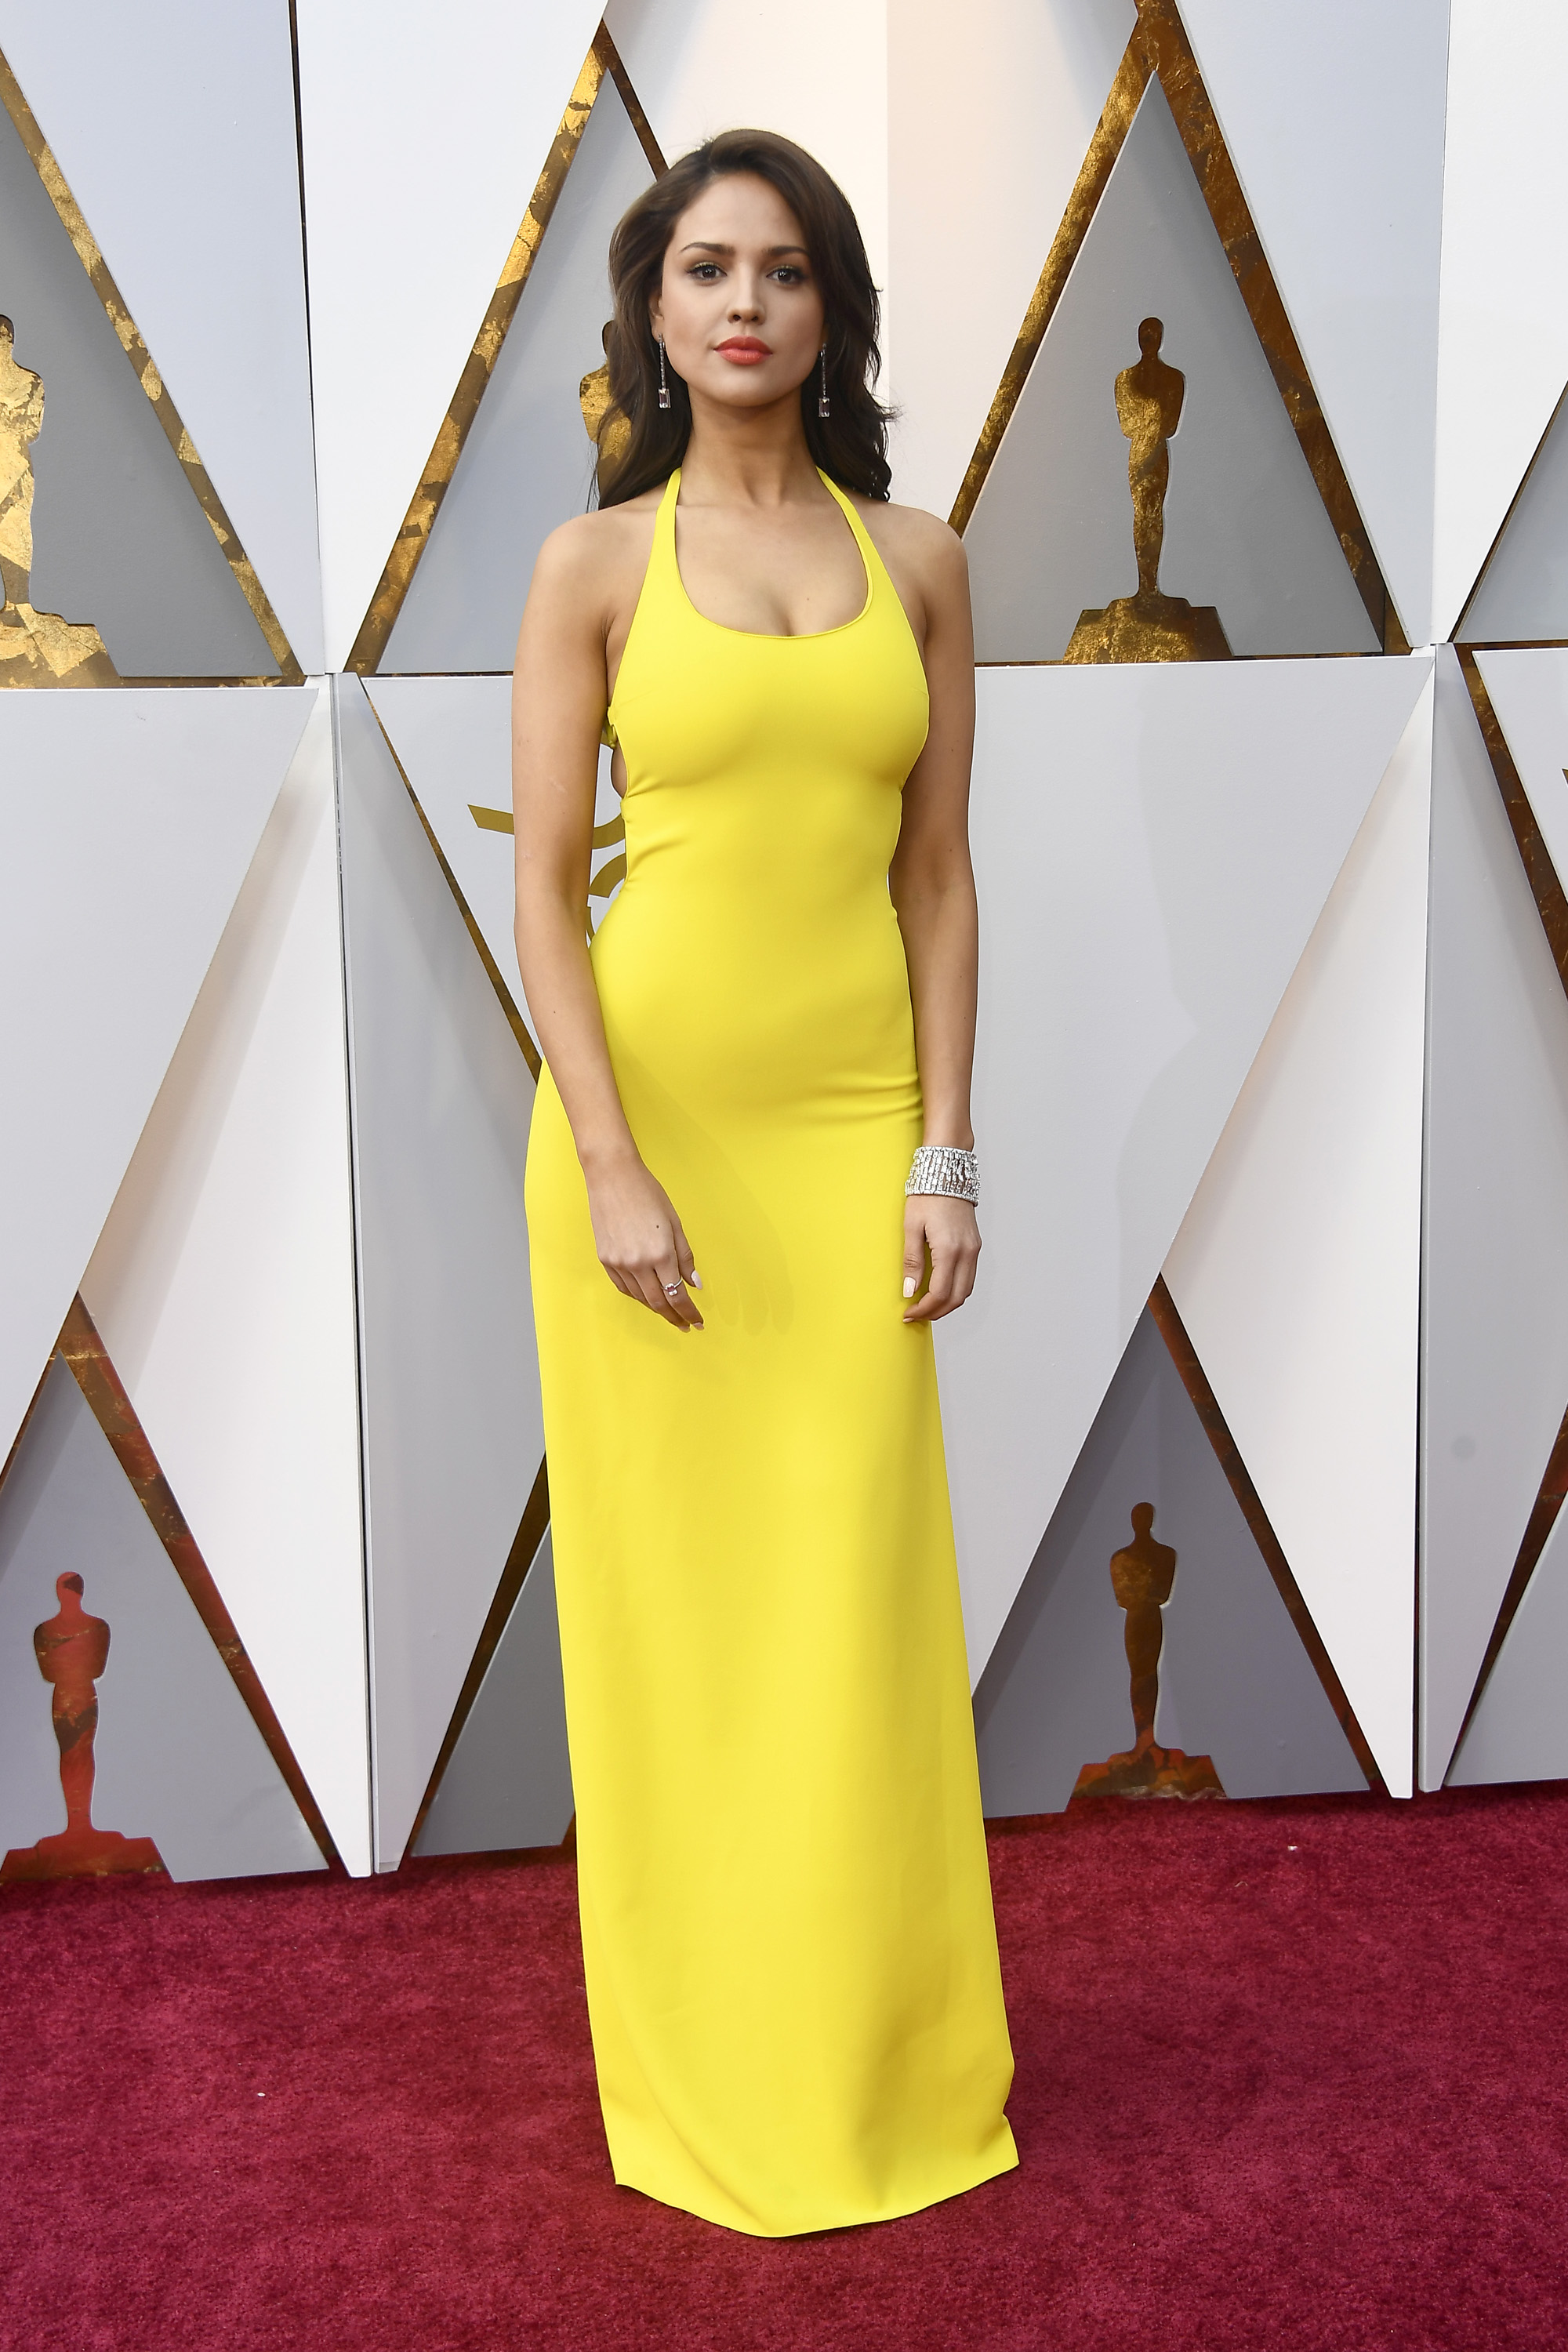 HOLLYWOOD, CA - MARCH 04:  Eiza Gonzalez attends the 90th Annual Academy Awards at Hollywood & Highland Center on March 4, 2018 in Hollywood, California.  (Photo by Frazer Harrison/Getty Images)